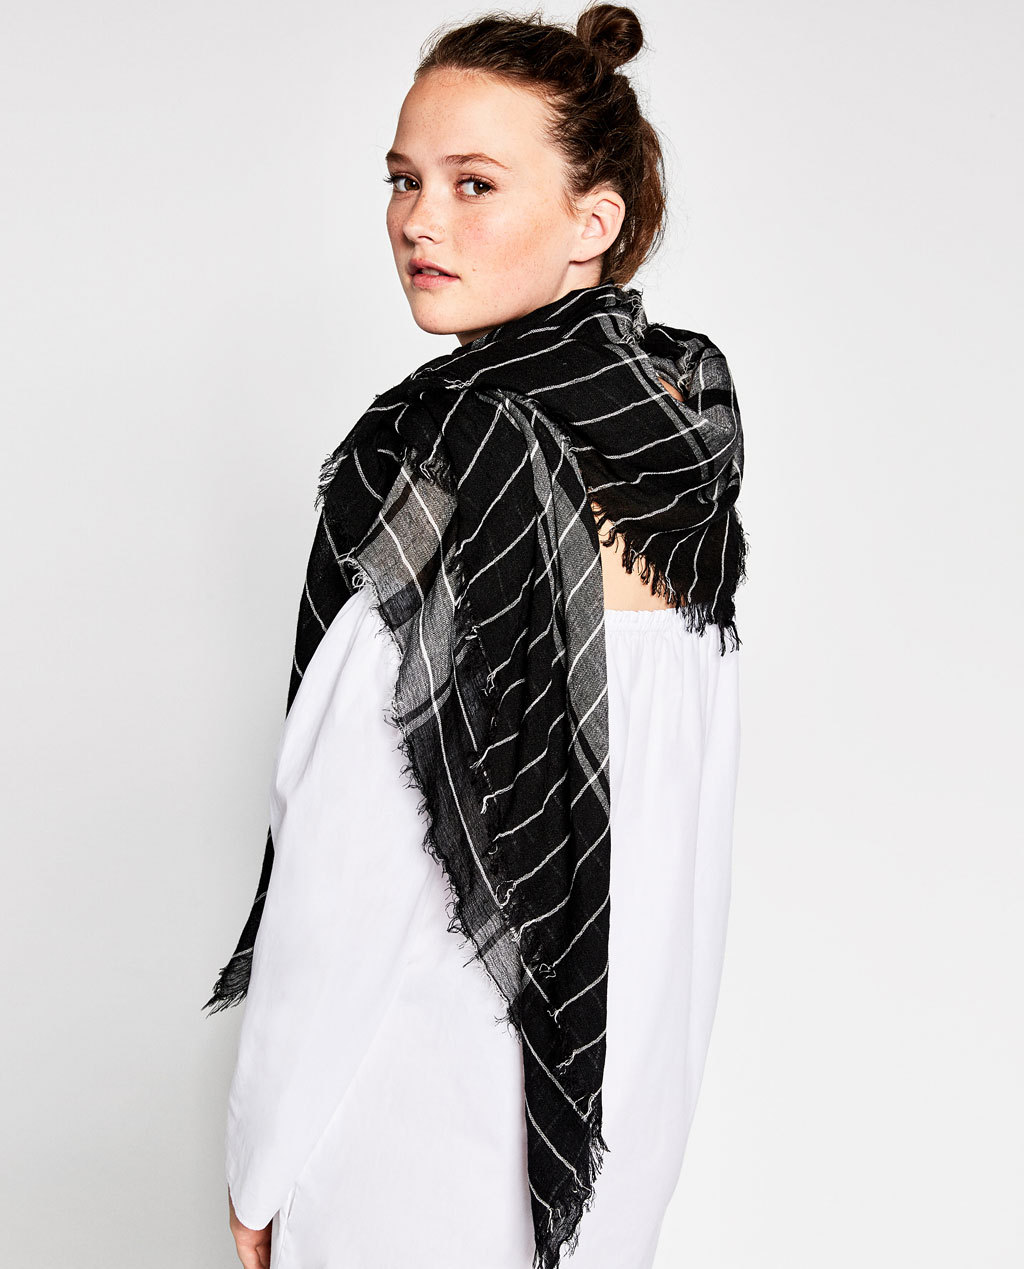 2016 New Single Big Black Scarf In Autumn And Winter Female Thin Shawl Large Spanish Exports